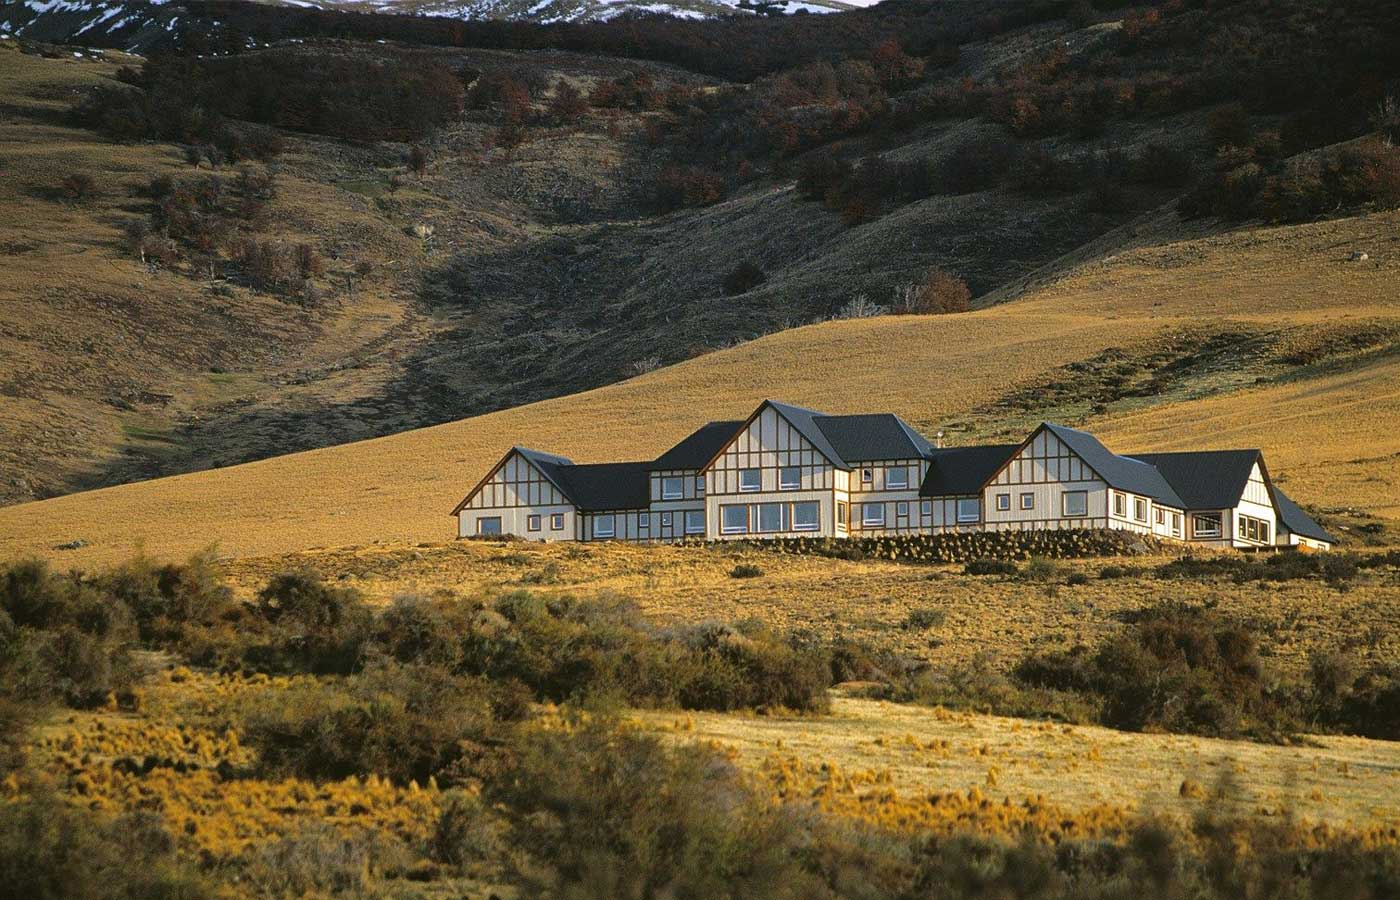 Luxury holidays to El Calafate, Argentina